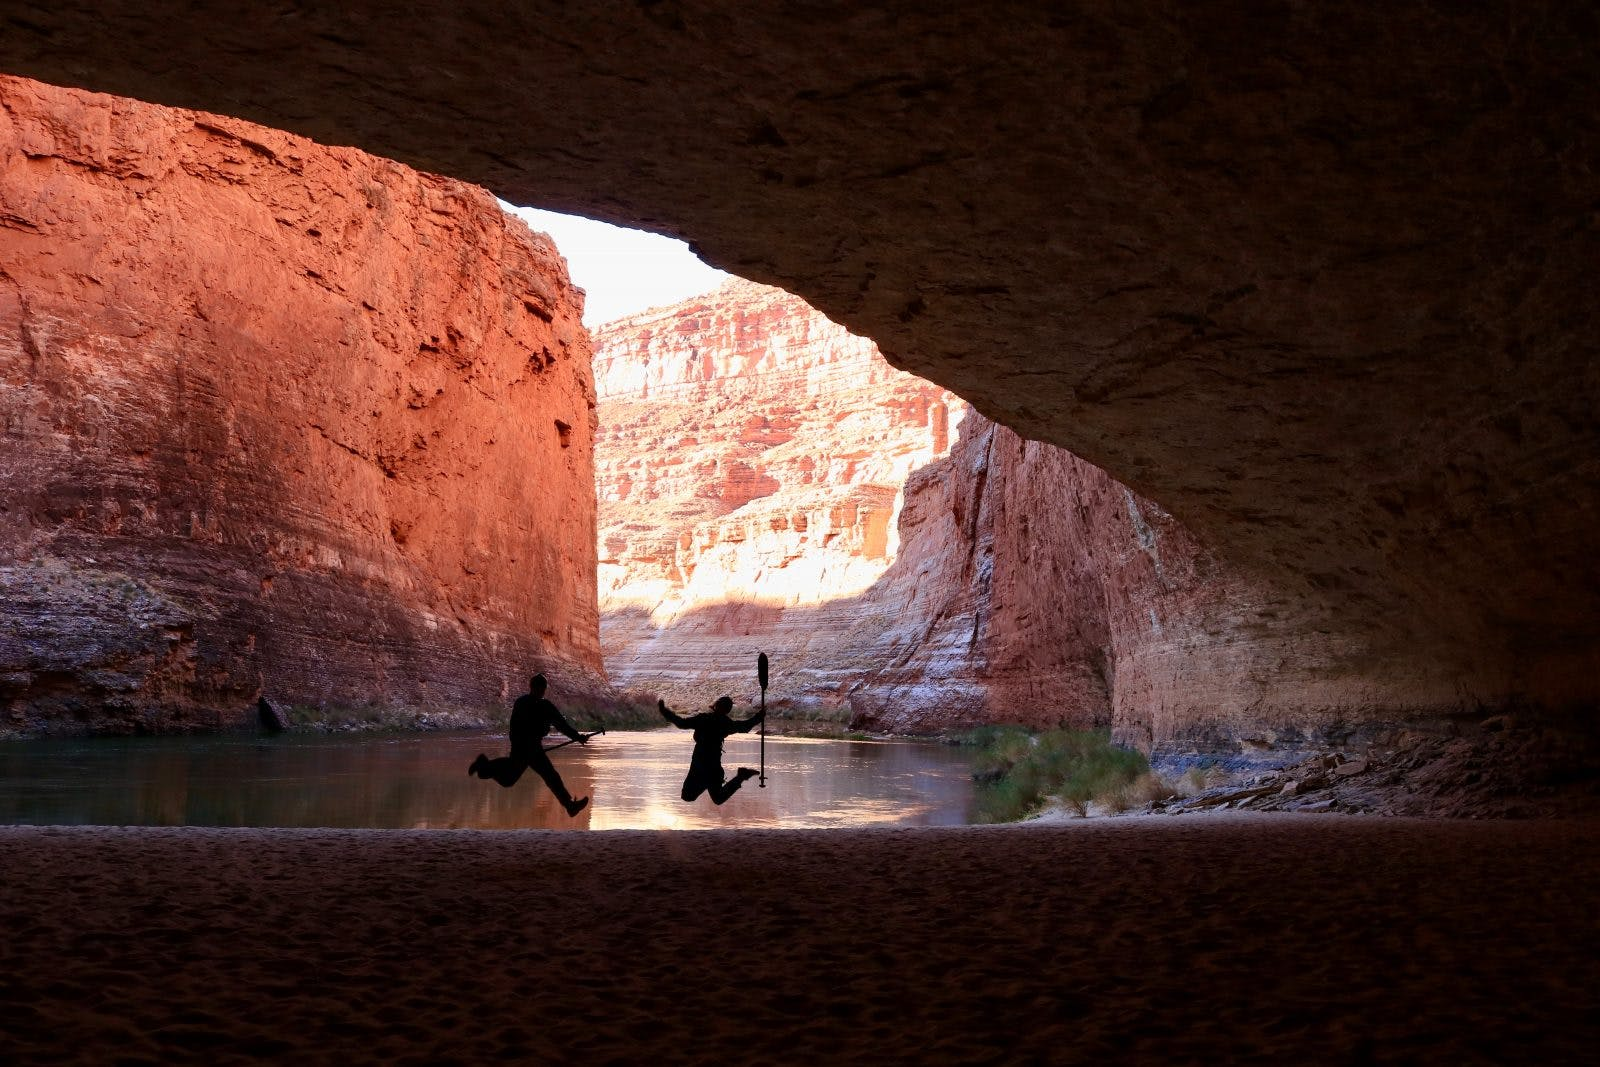 Exploring Redwall Cavern at river mile 33.3 on day two.